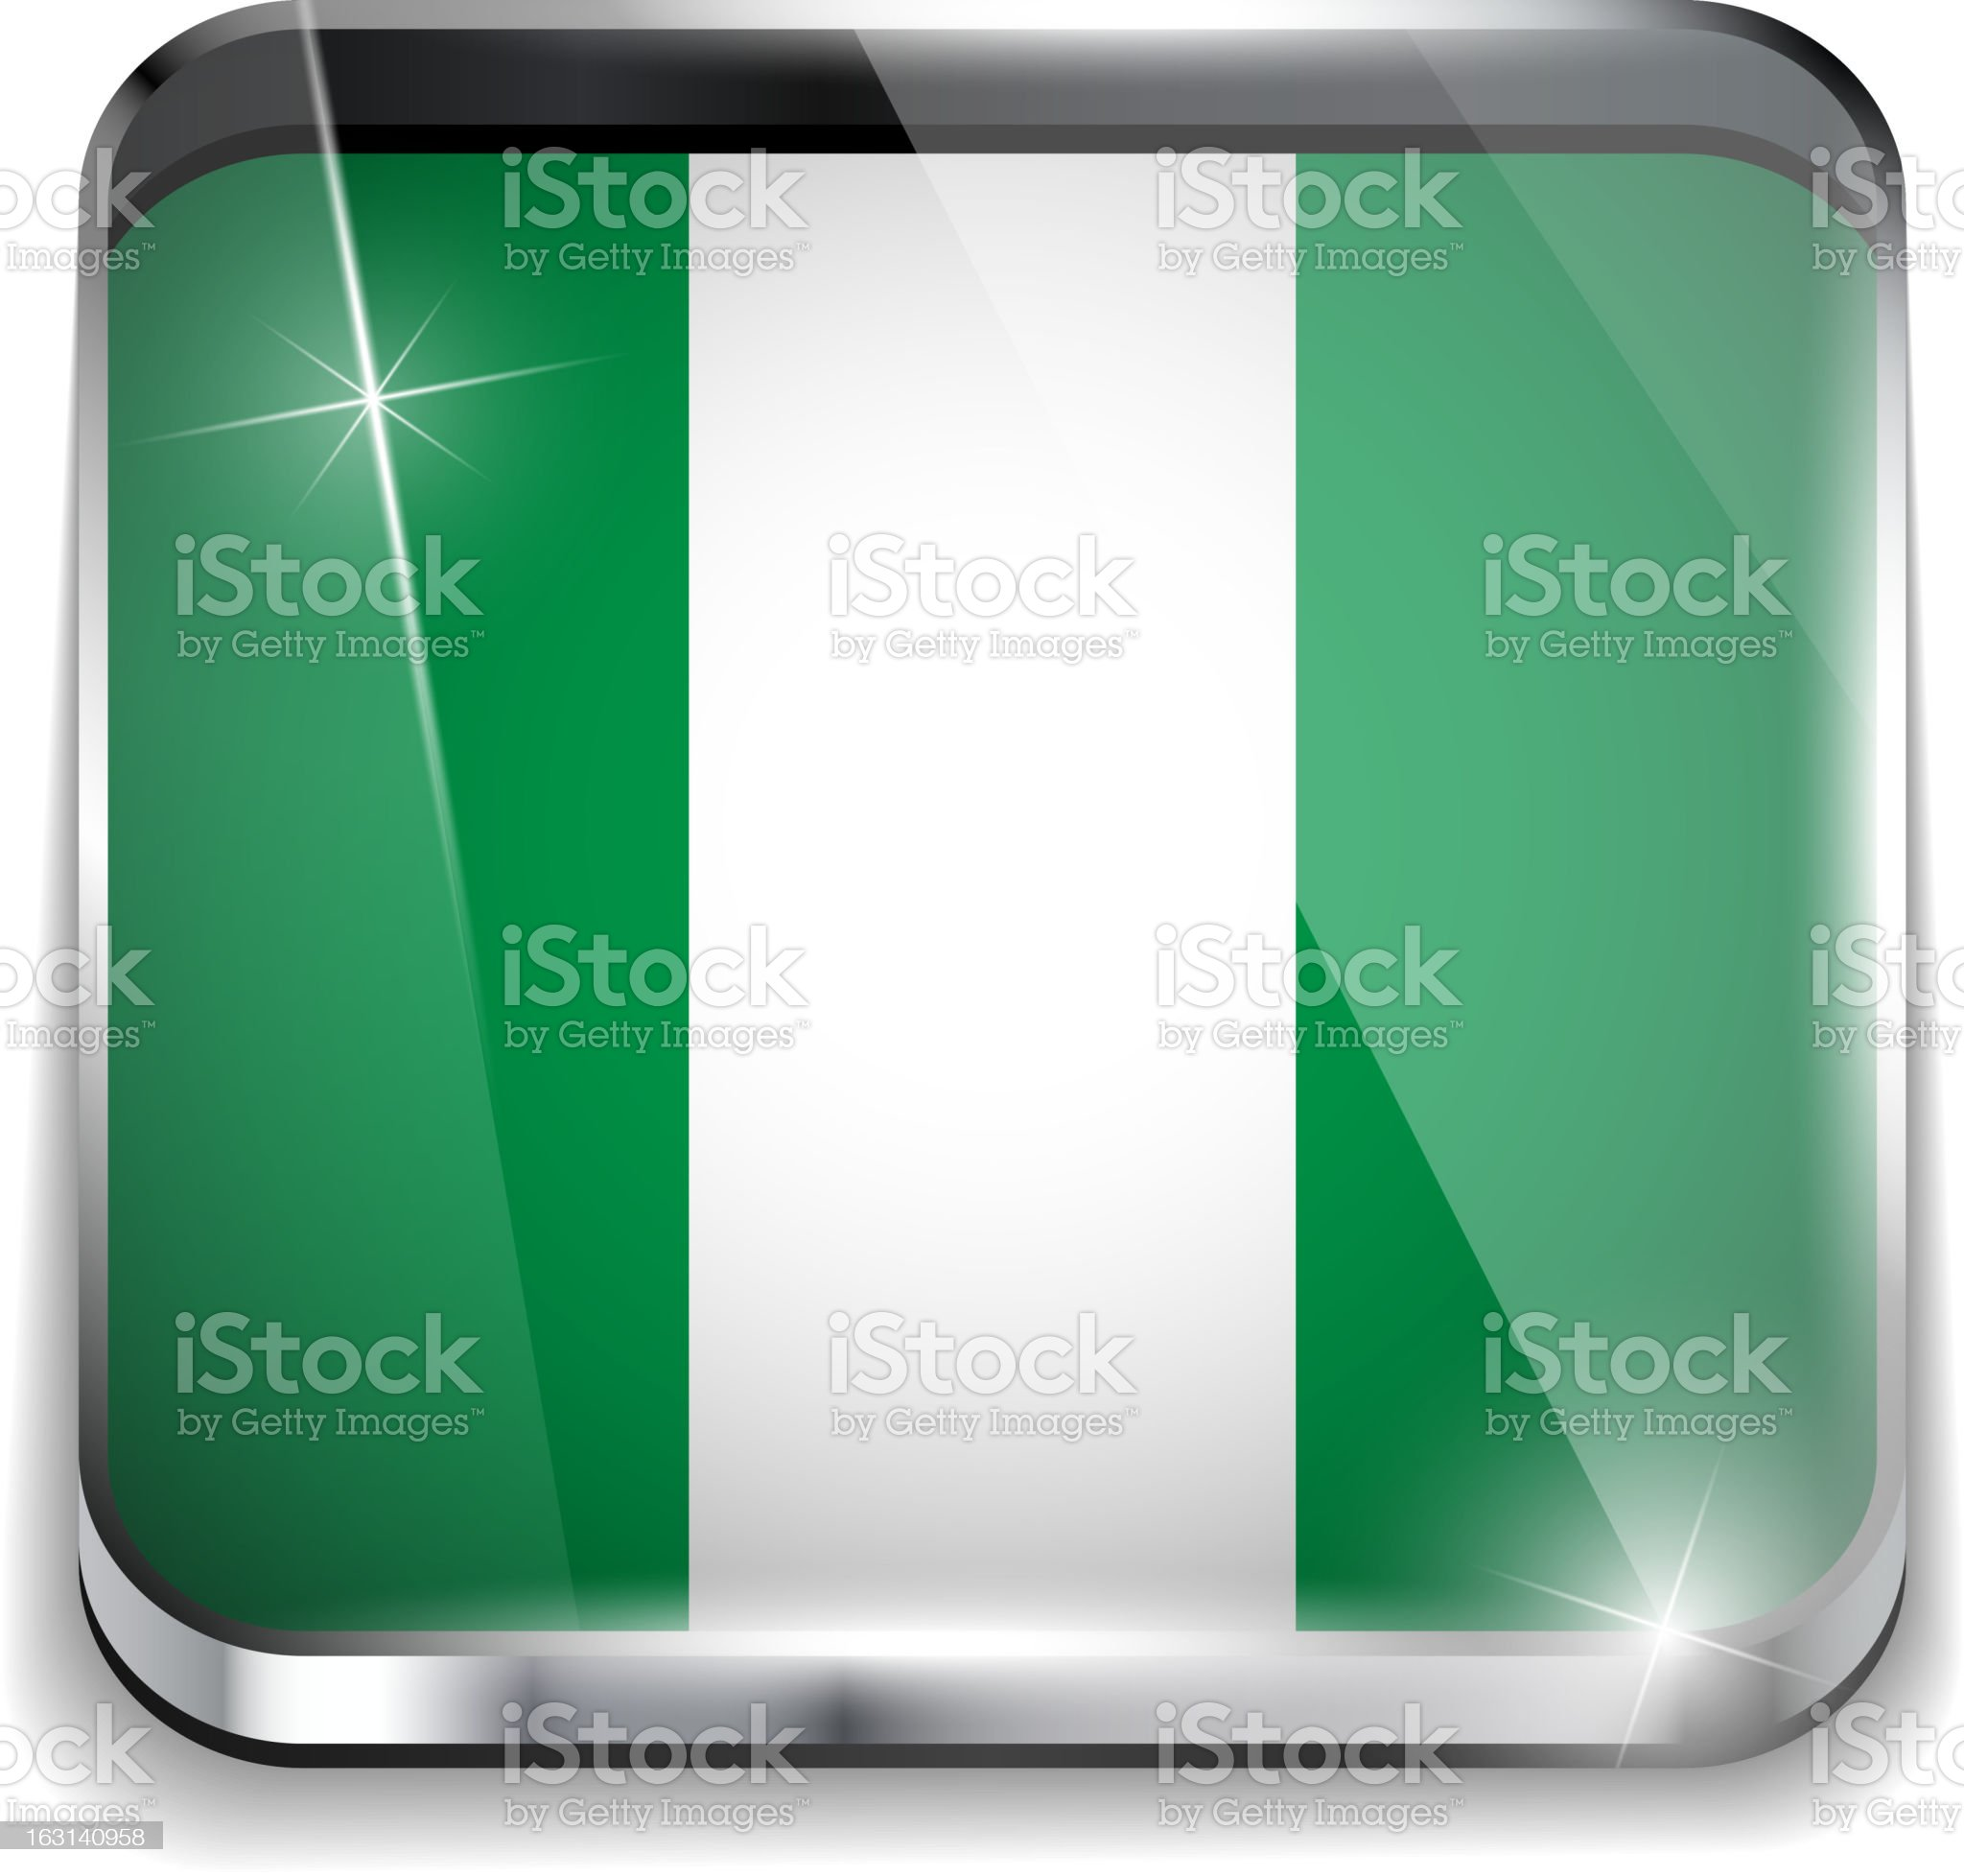 Nigeria Flag Smartphone Application Square Buttons royalty-free stock vector art